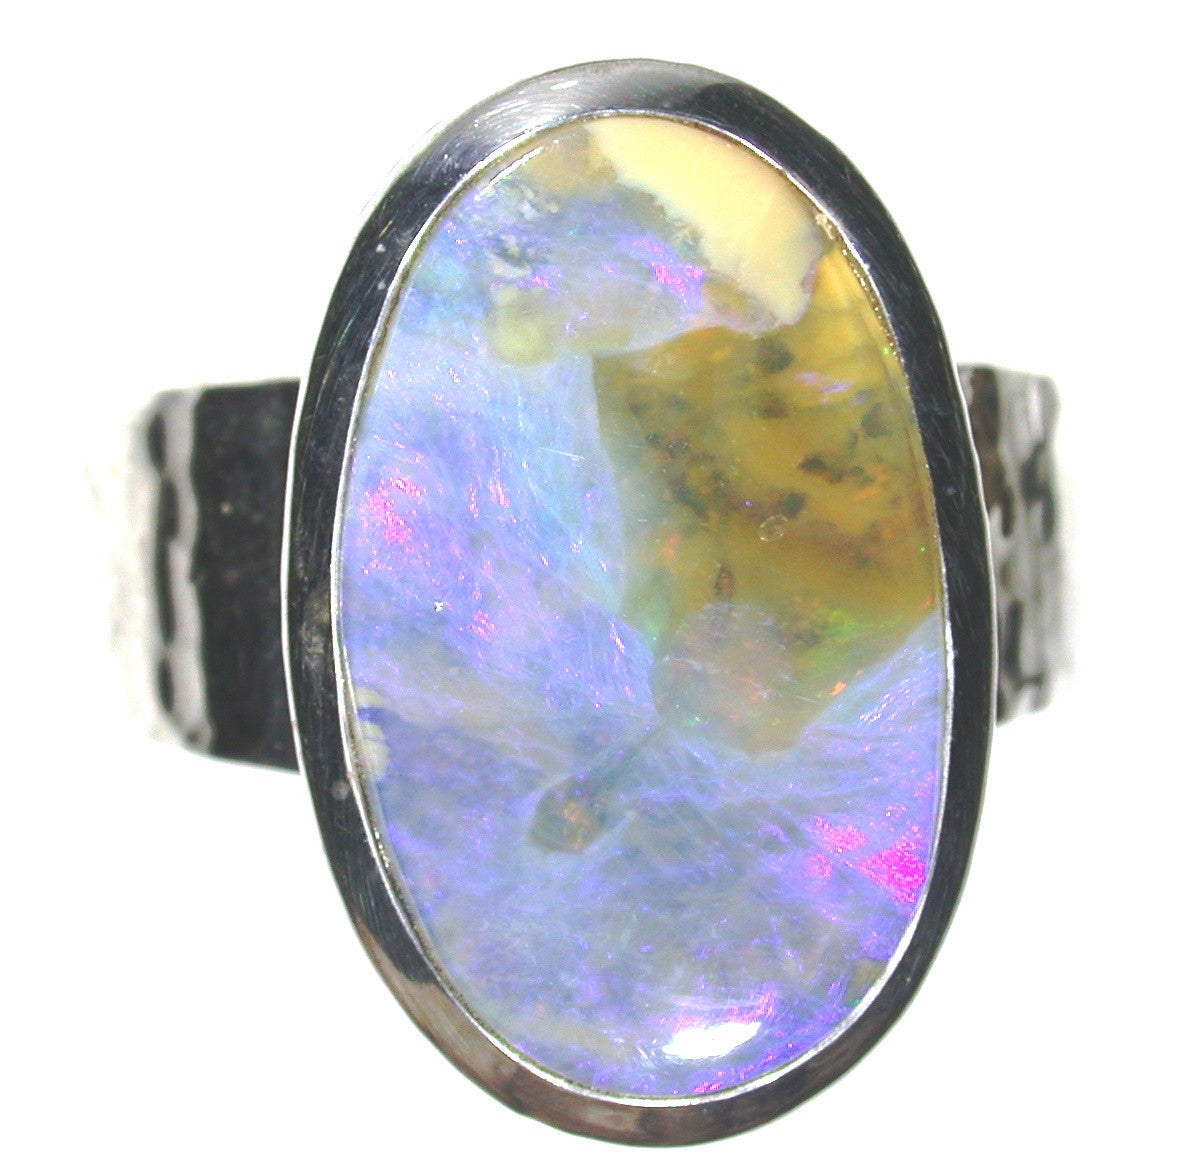 Cloudy blue sky opal sterling silver ring